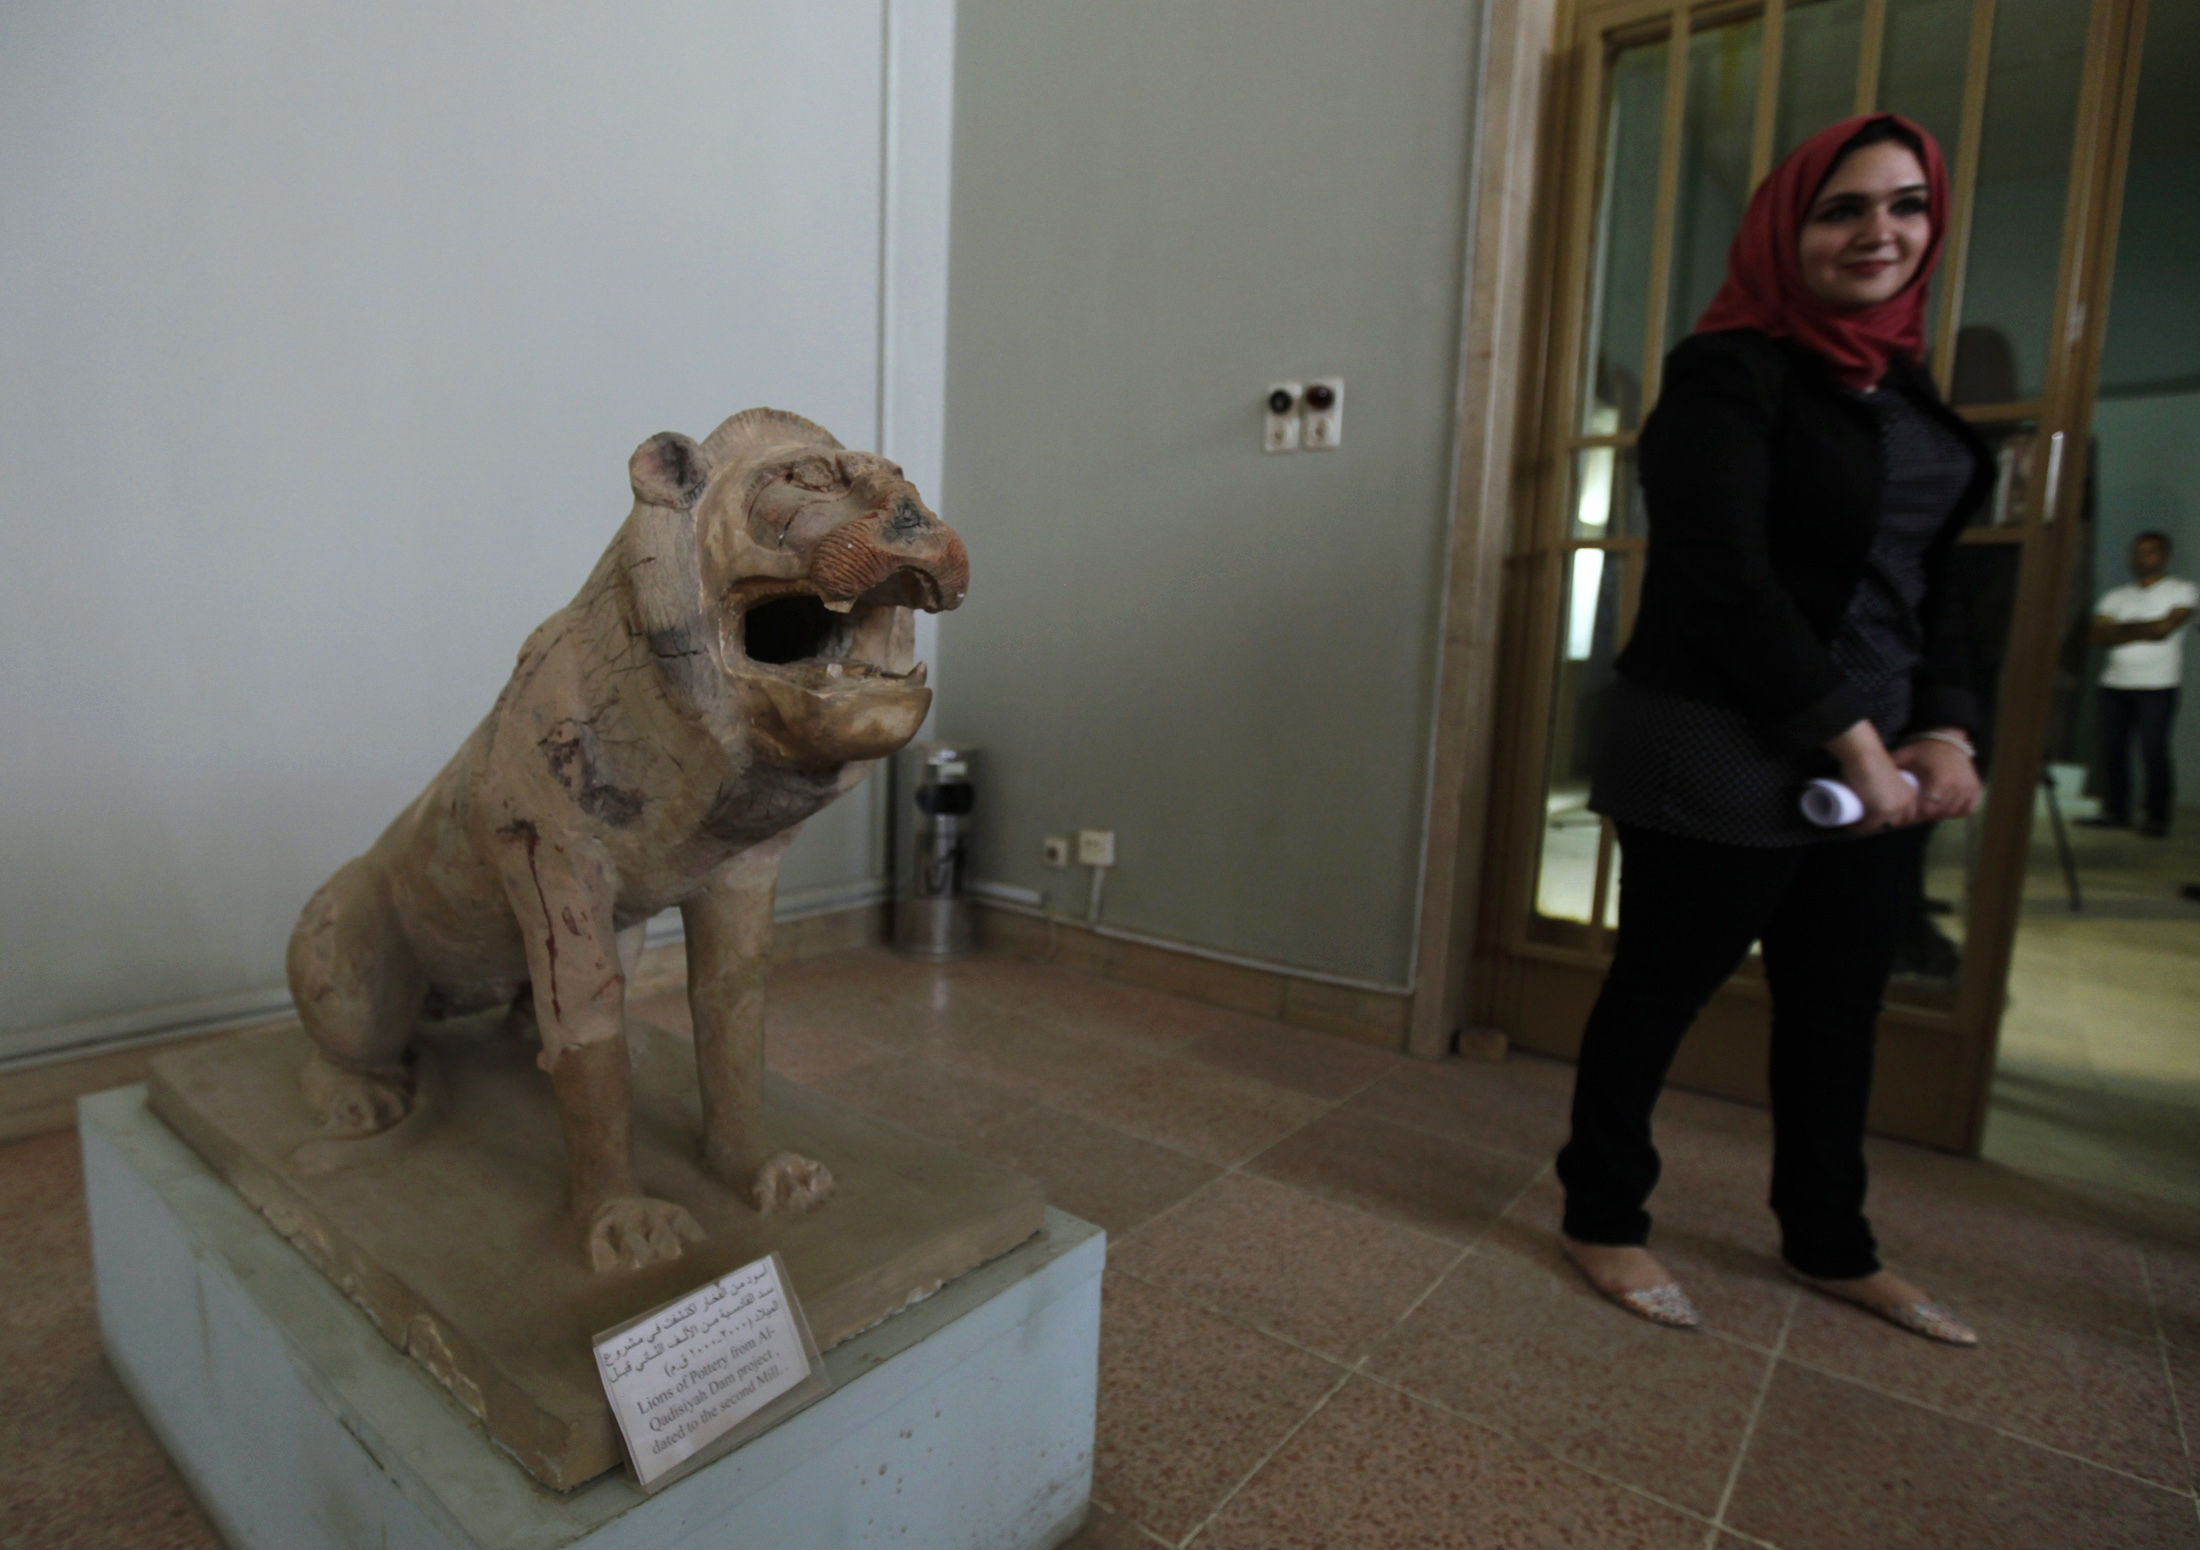 A woman walks past a statue of a lion, which dates back to the Assyrian period in the second millennium BC